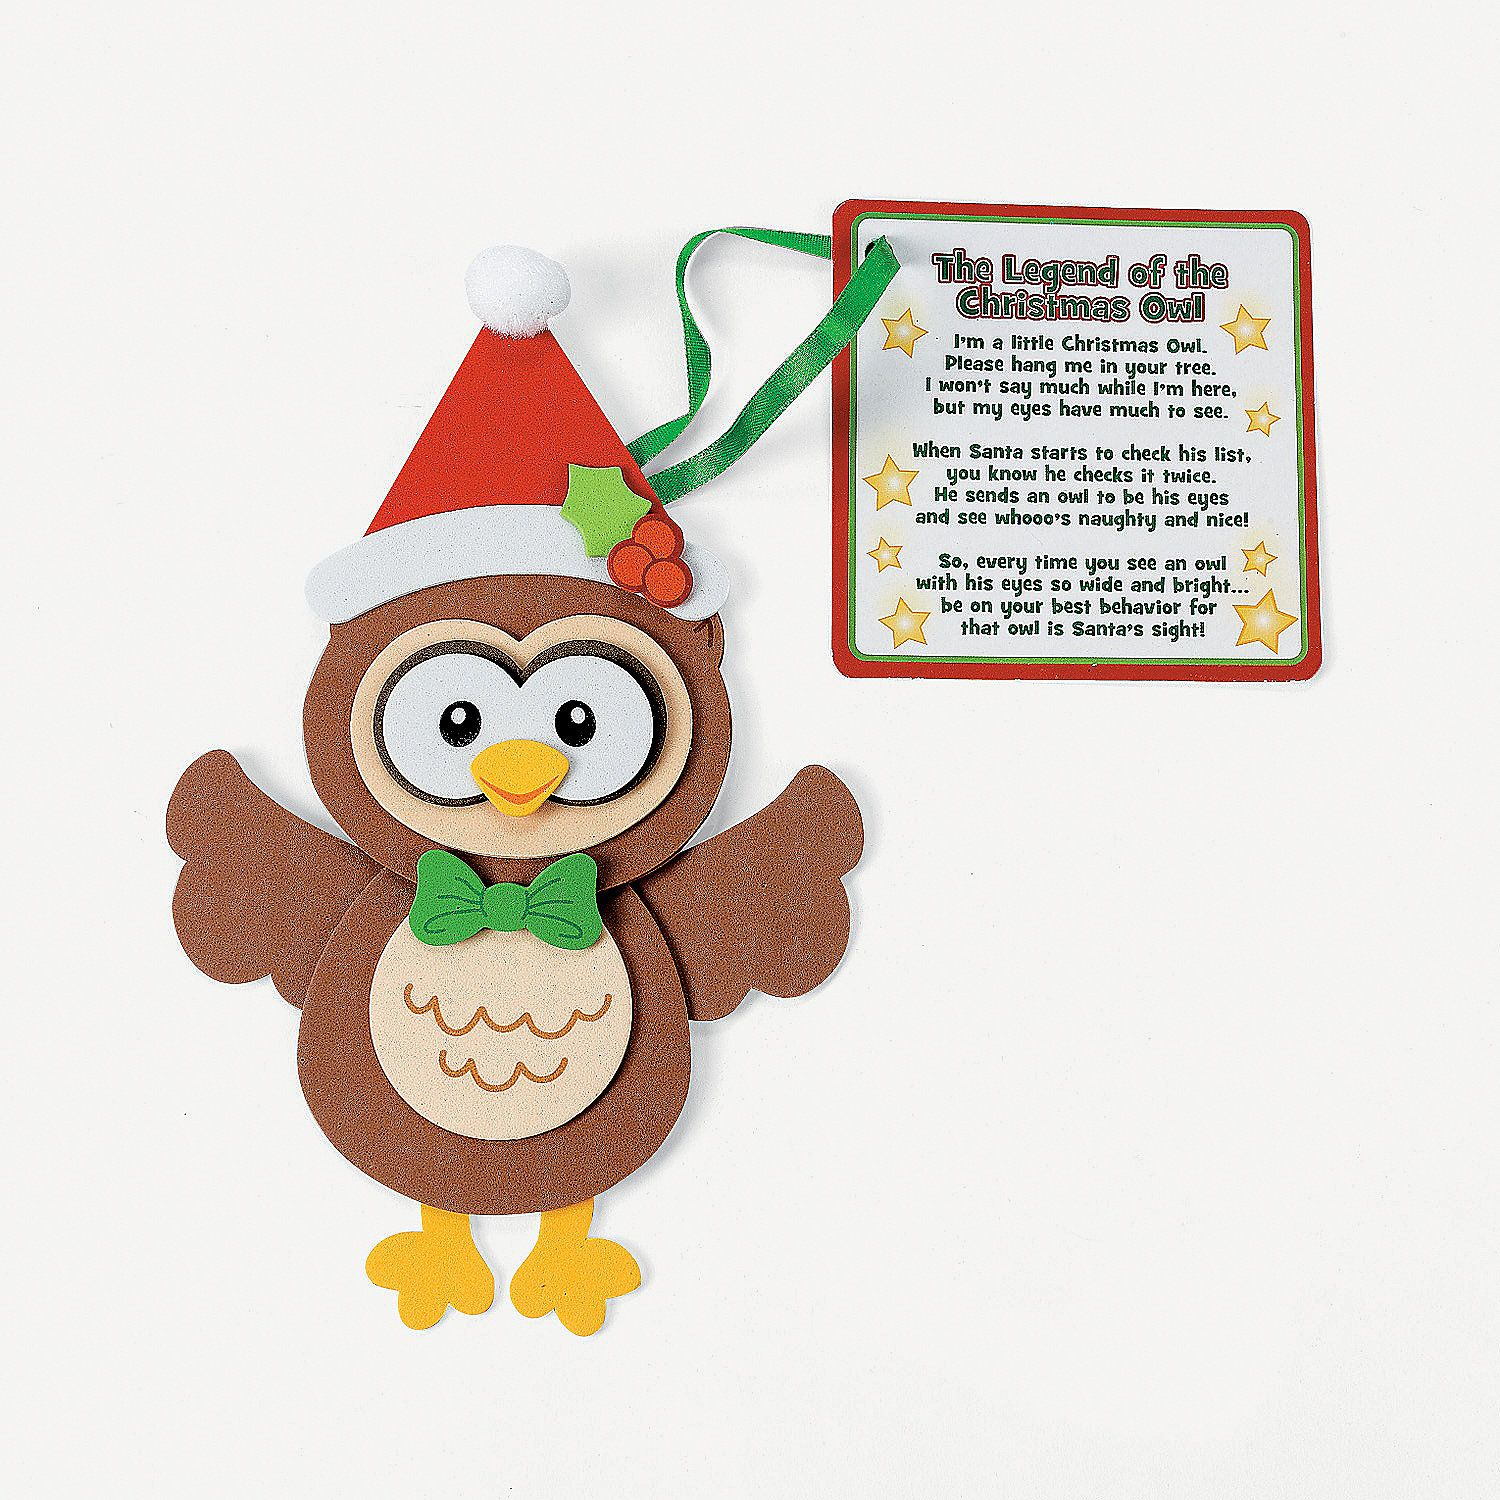 Christmas Owl Ornament With Poem Craft Kit ... - photo#41